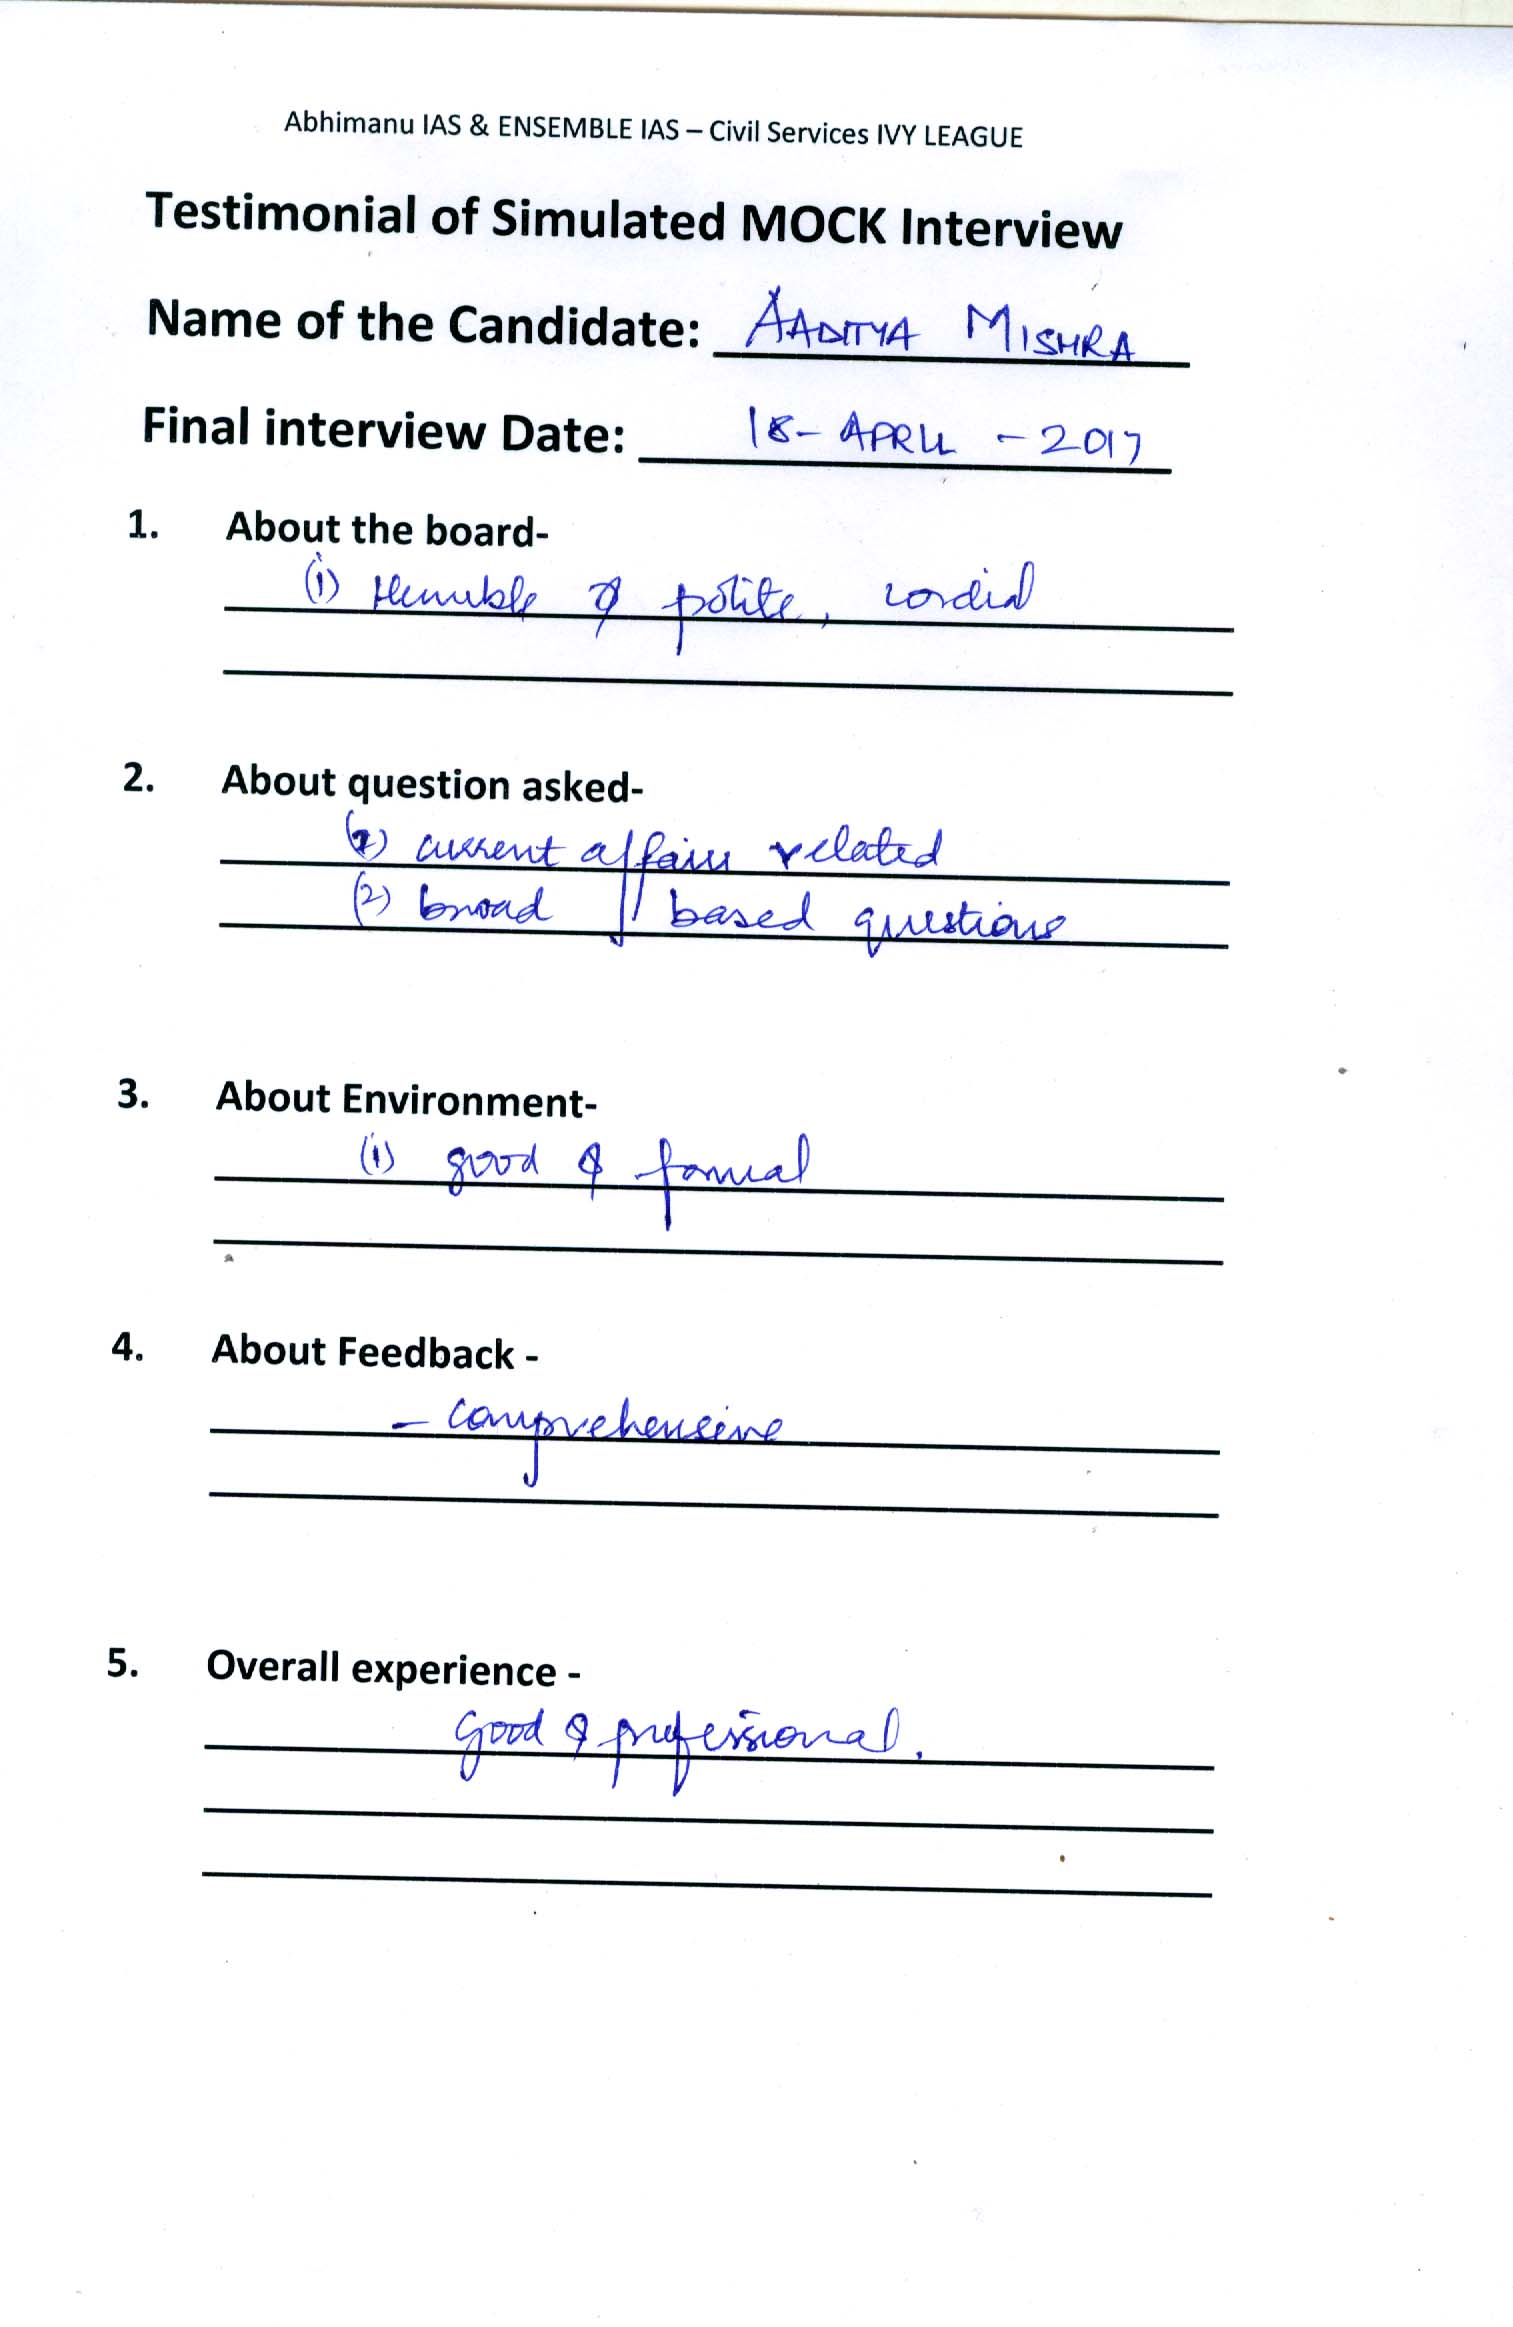 Interview Testimonial By- Additya Mishra